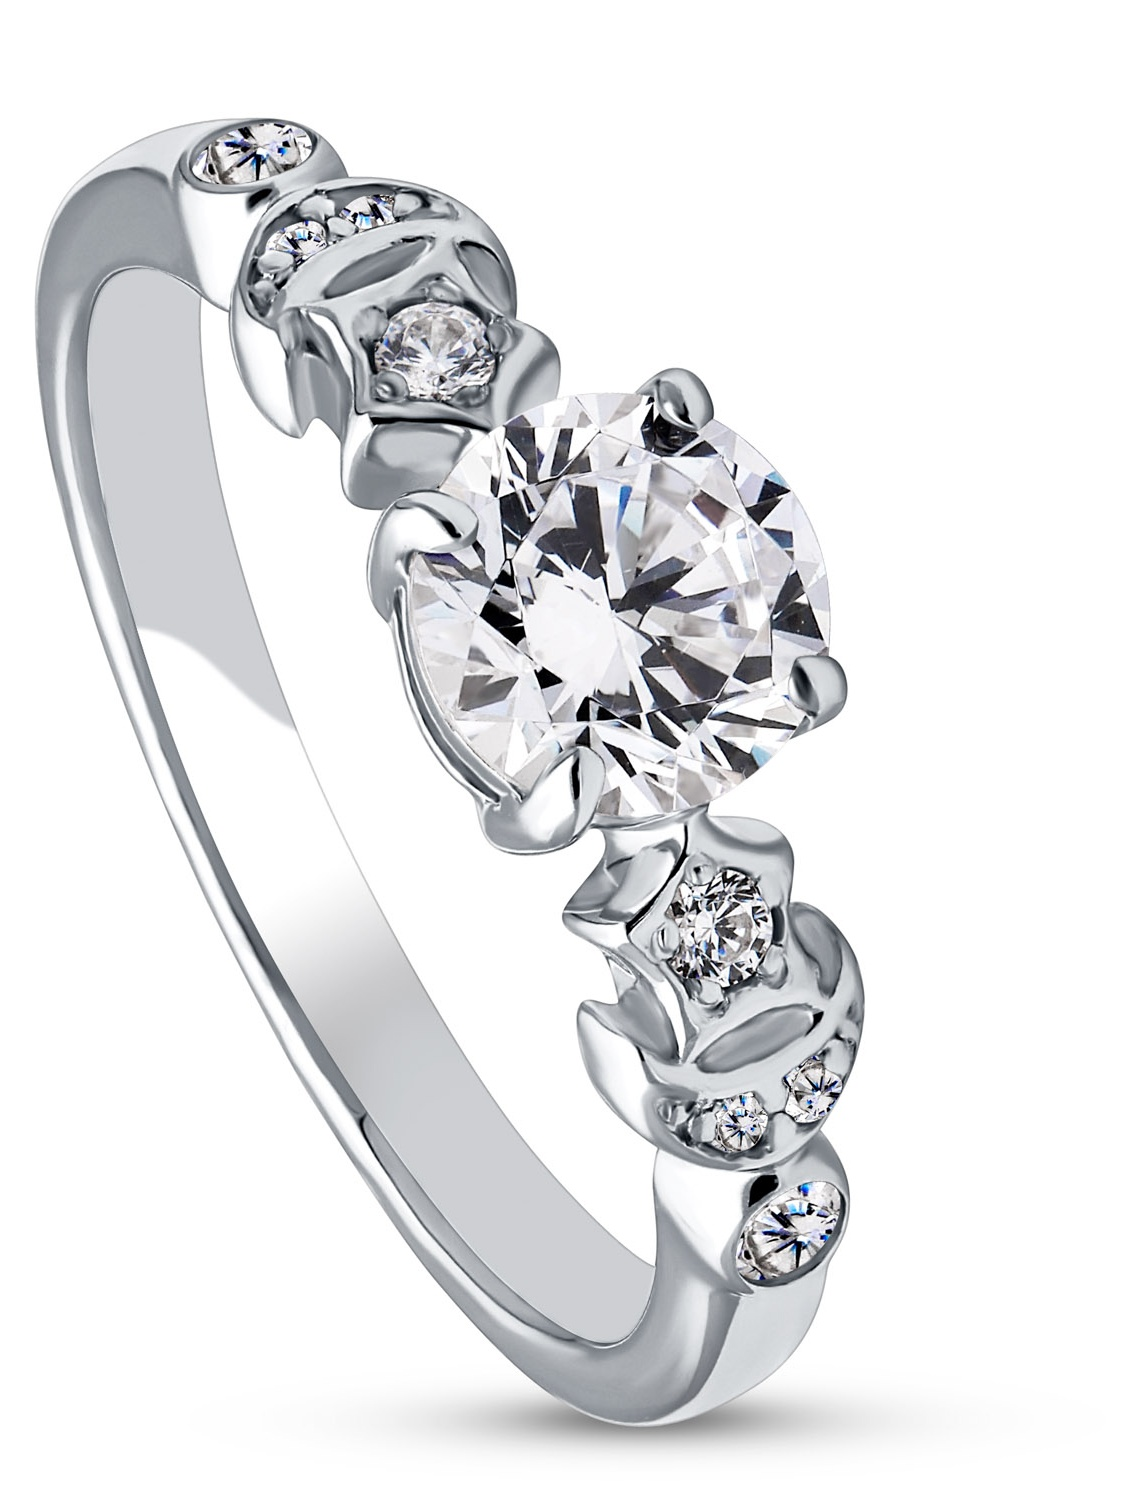 BERRICLE Rhodium Plated Sterling Silver Cubic Zirconia CZ Star Crescent Moon Promise Ring Size 5